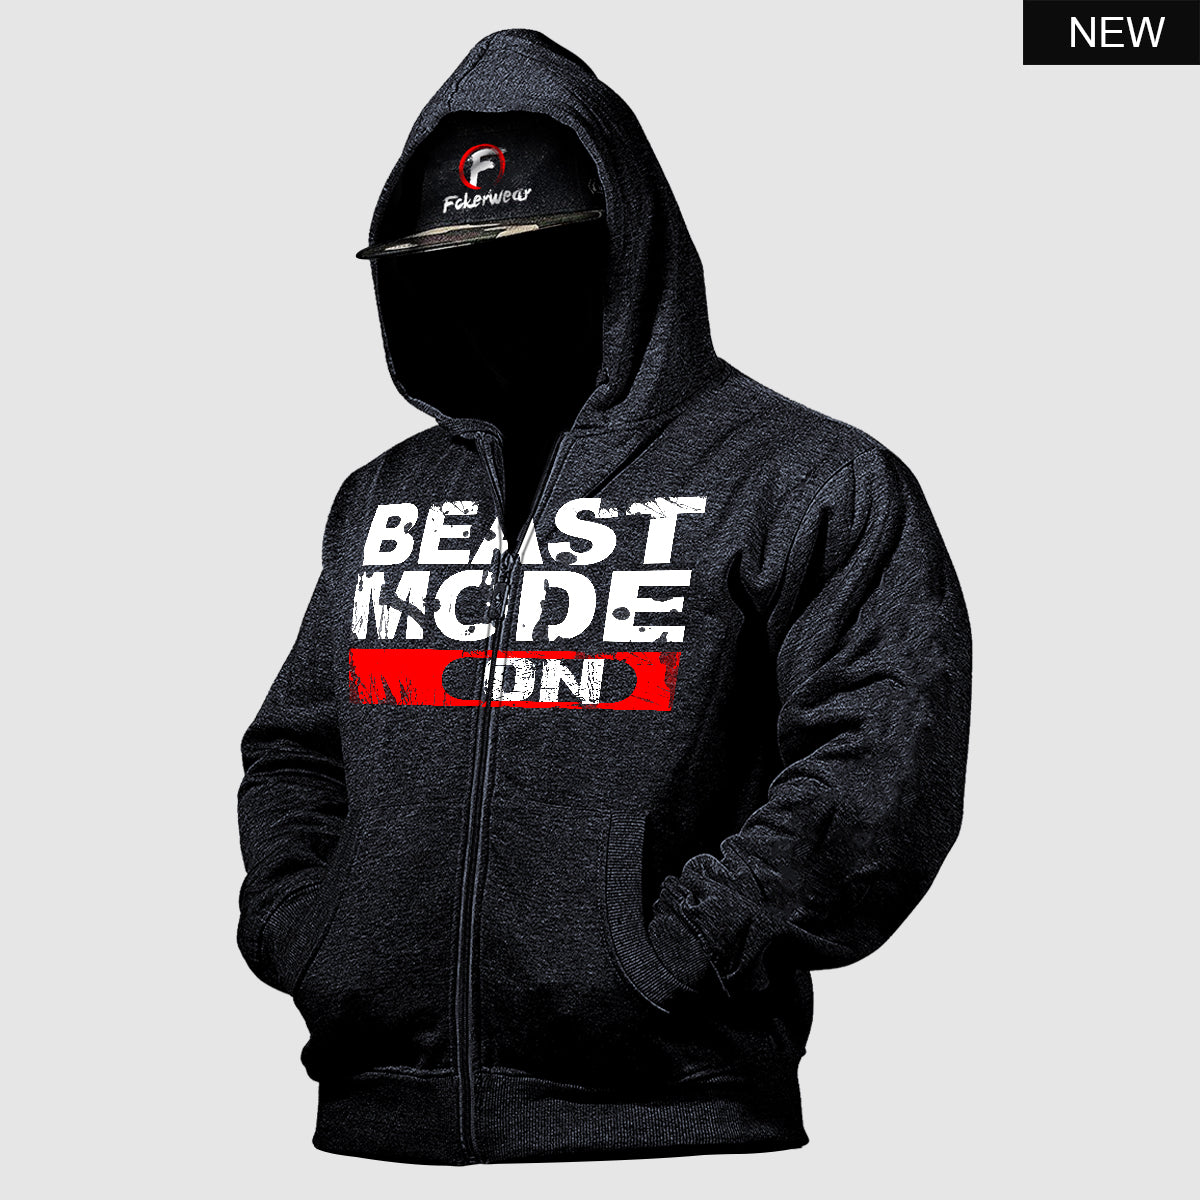 Beast Mode On™  zip hoodie